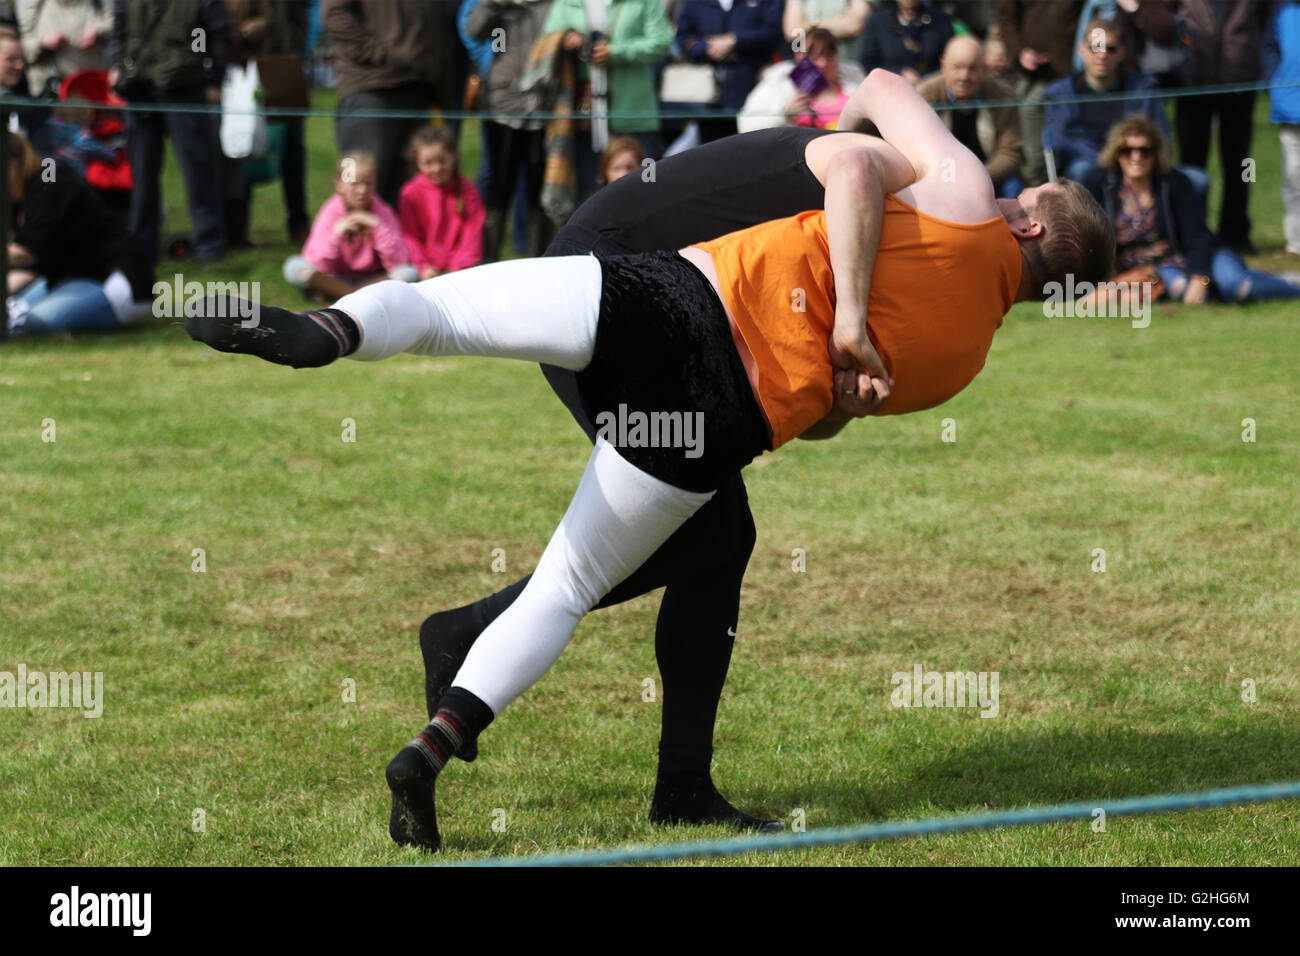 Bywell, England - May 30, 2016: Cumberland and Westmoreland Wrestling match at the Northumberland County Show at - Stock Image